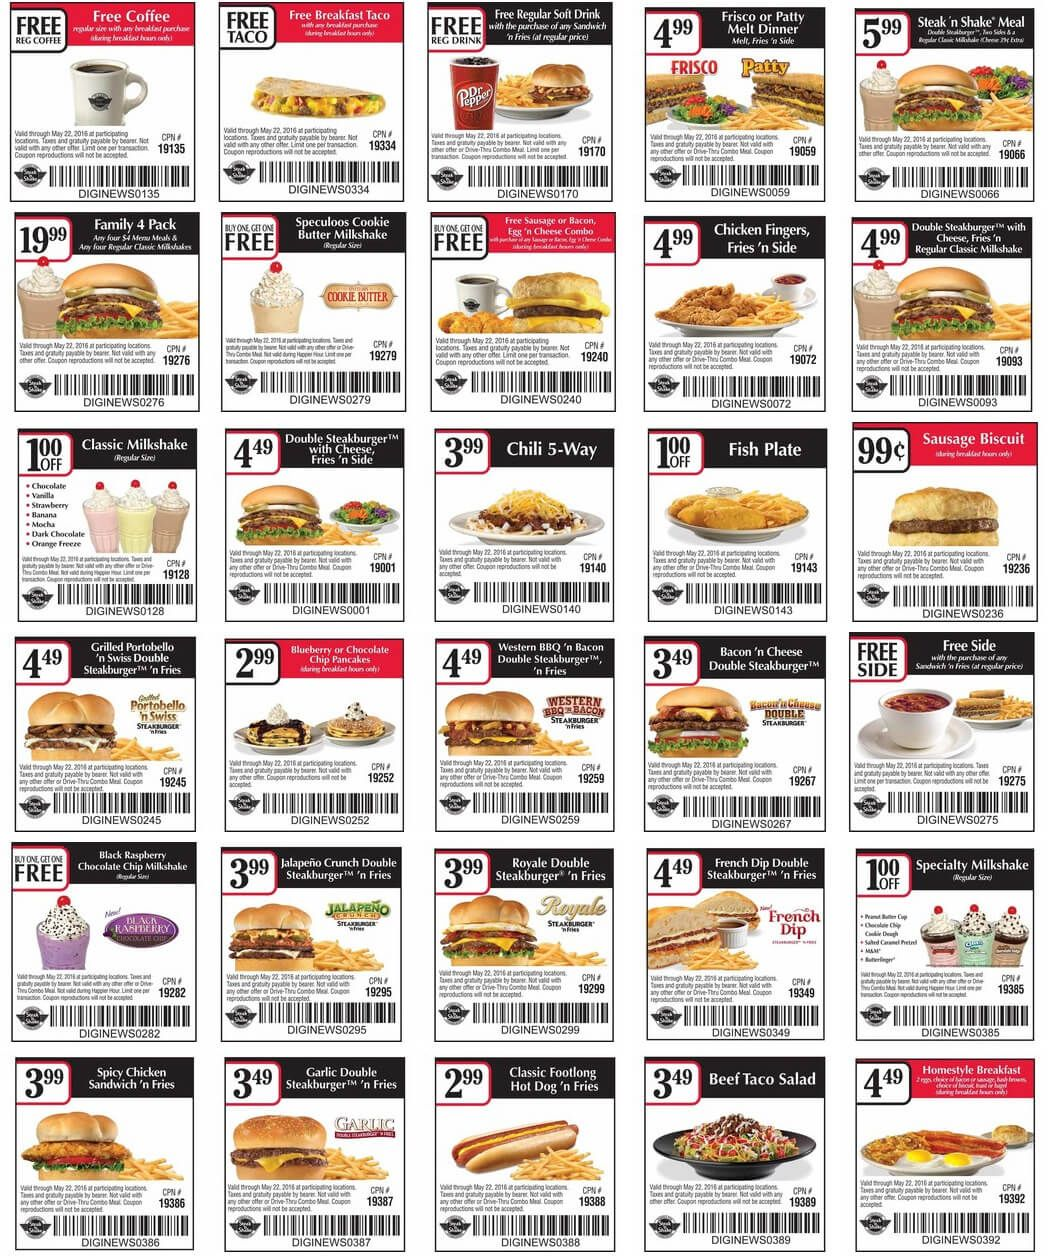 graphic regarding Steak and Shake Coupons Printable referred to as Pinned April 19th: Totally free espresso breakfast taco additional at